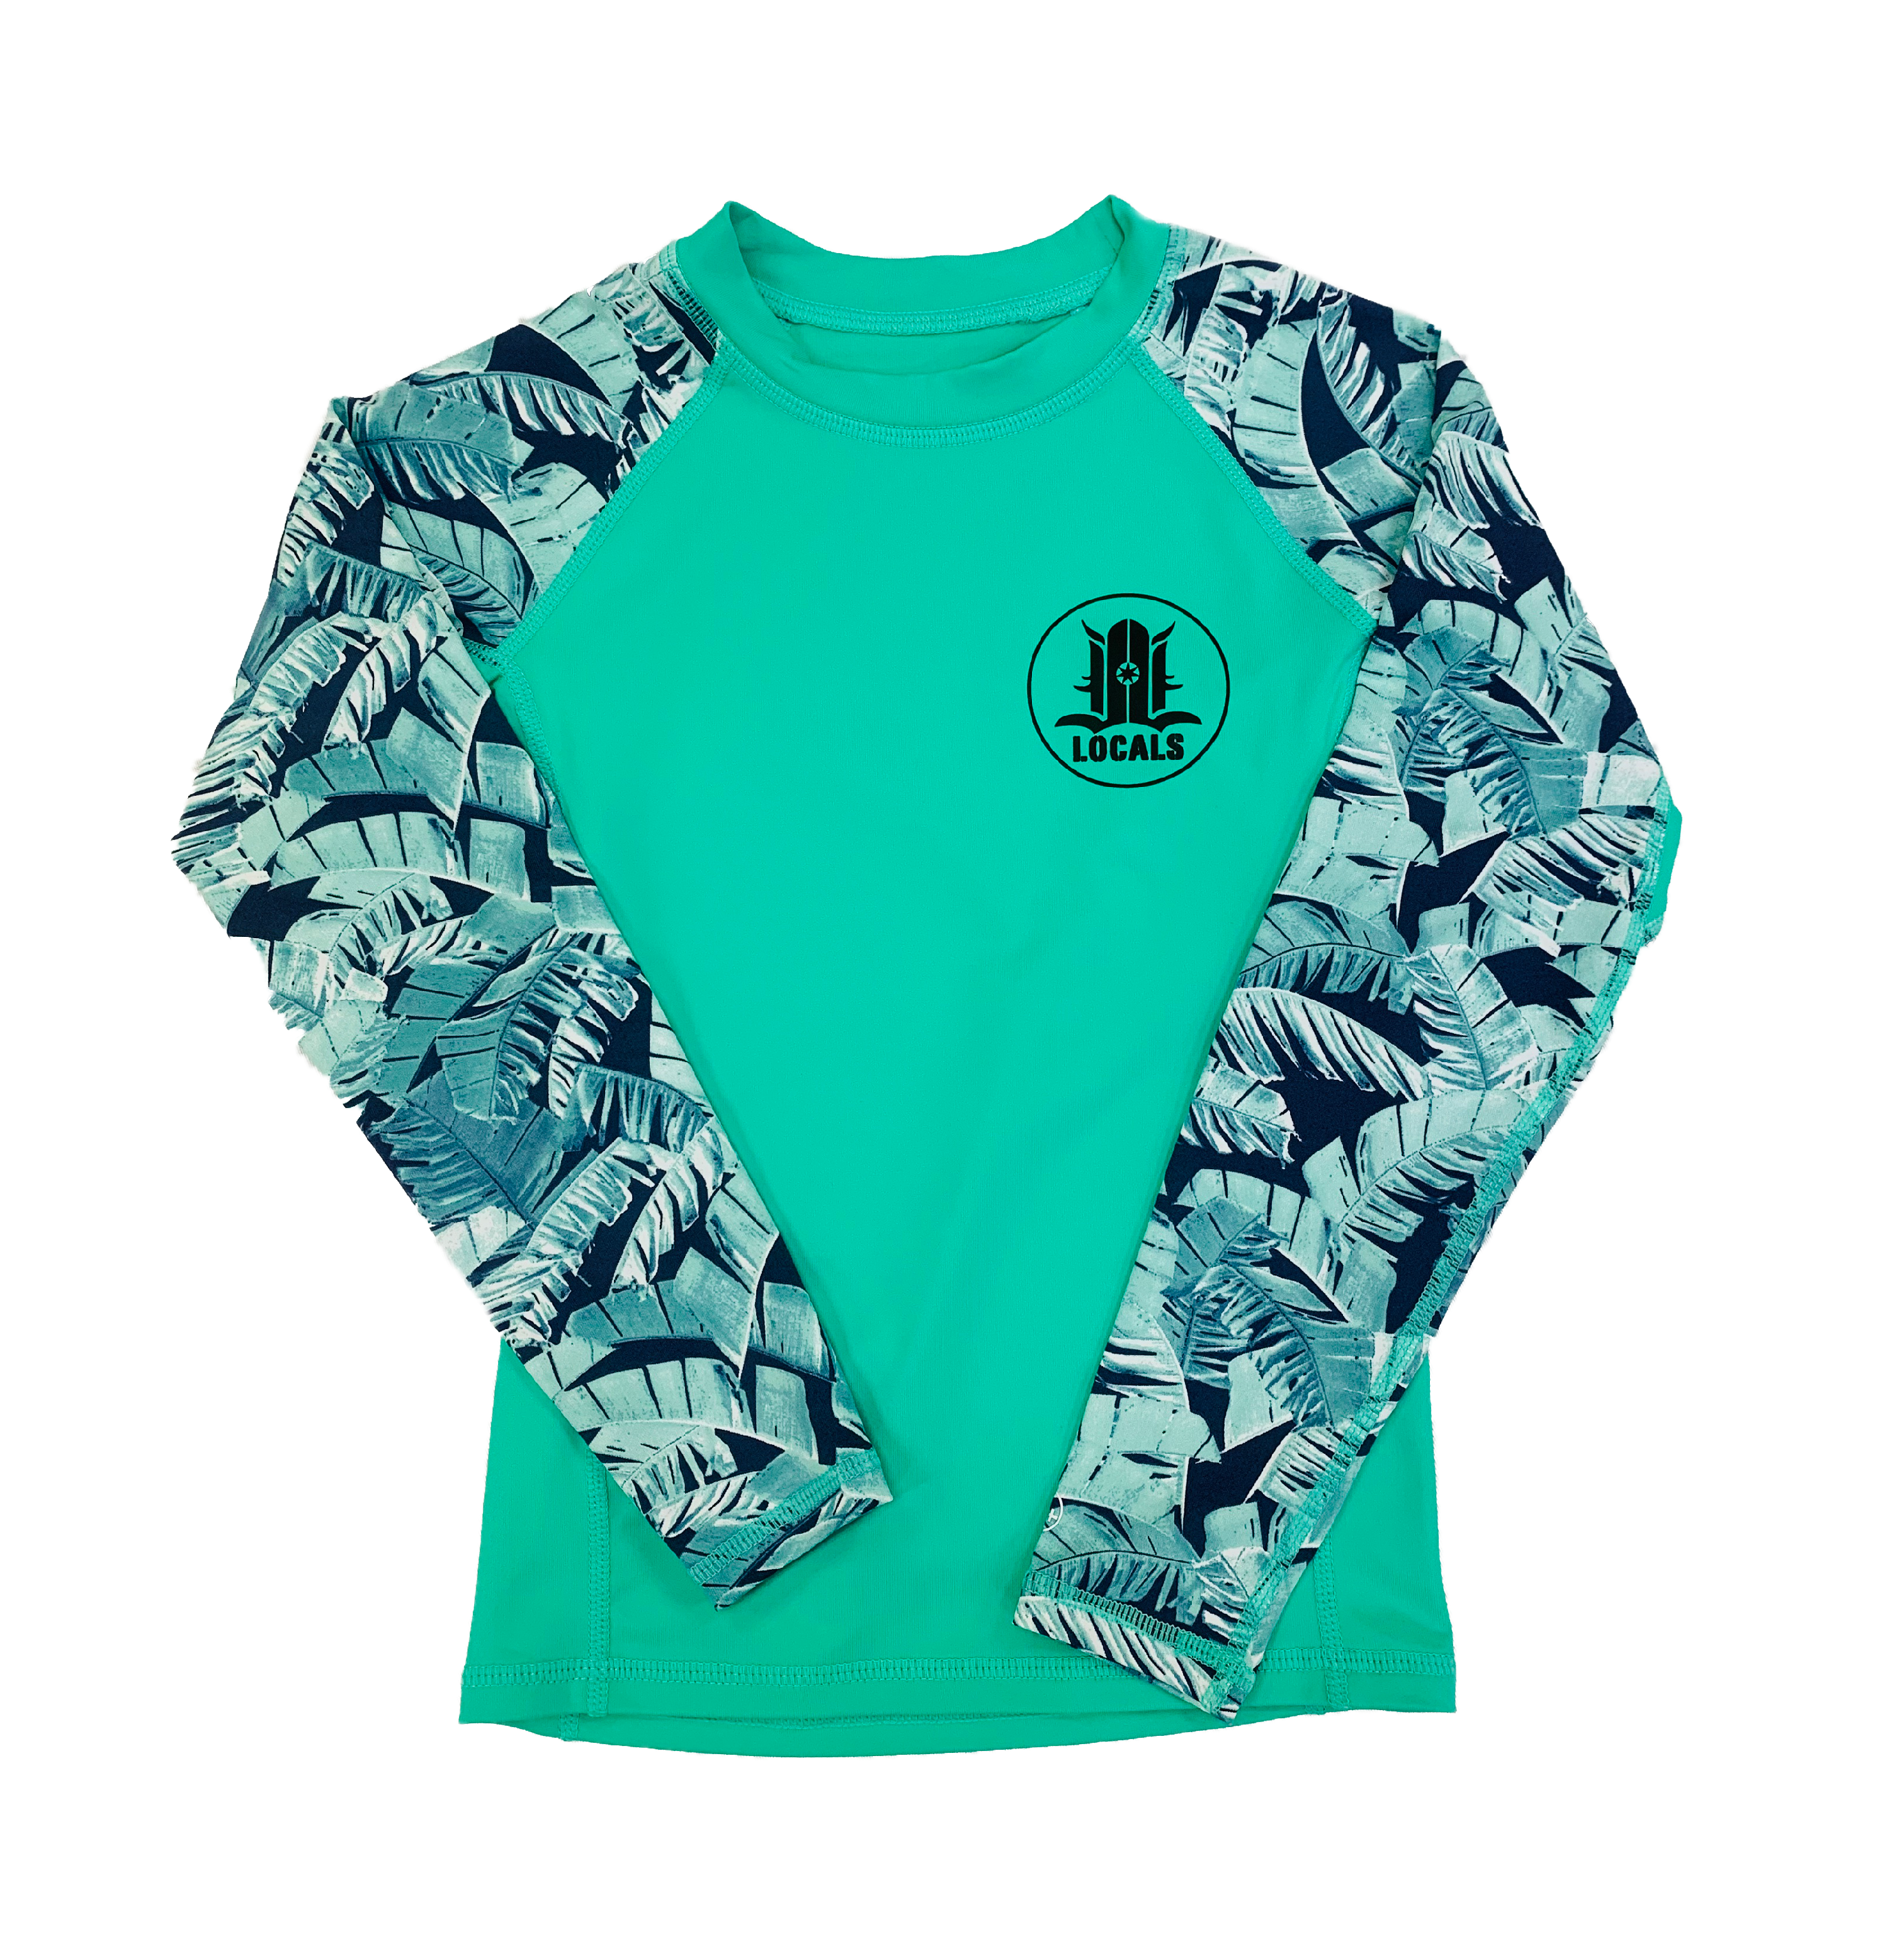 LOCALS GIRLS LENA L/S RASH GUARD UPF 50 MINT